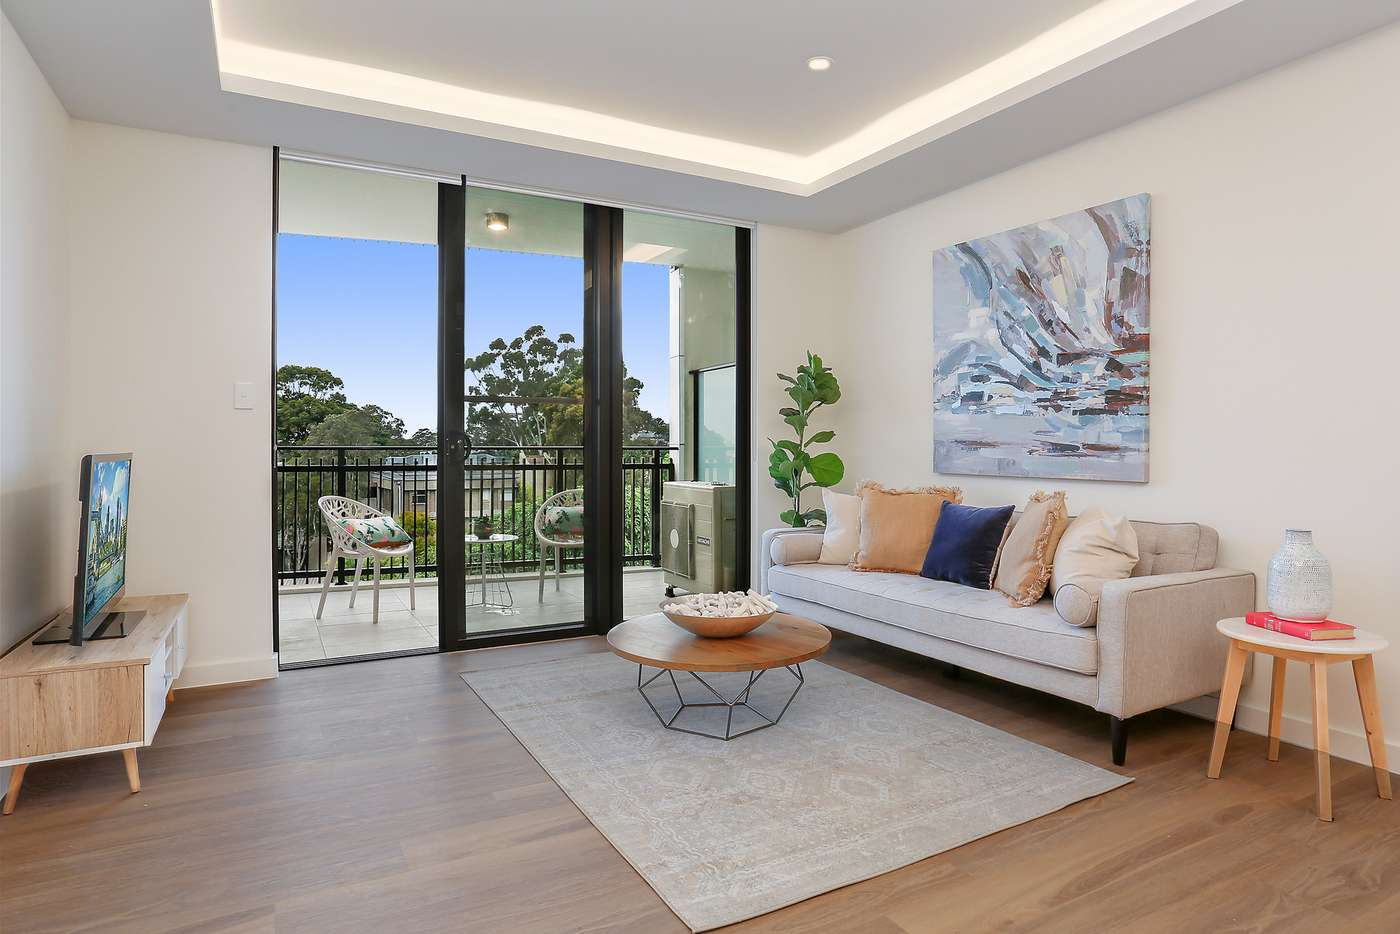 Main view of Homely apartment listing, 404/2 Murrell Street, Ashfield NSW 2131